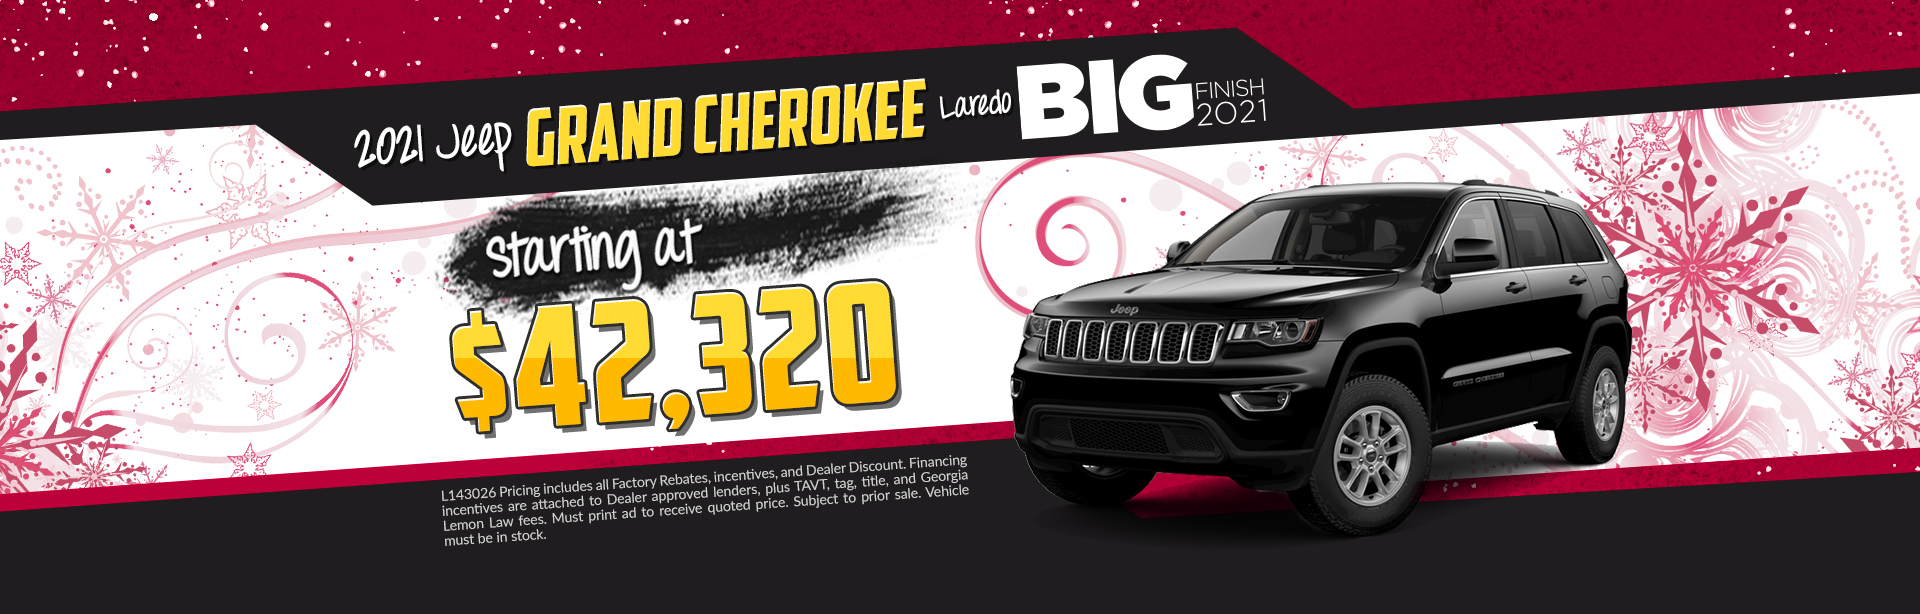 2020 Jeep Grand Cherokee - Lease for $379 per month